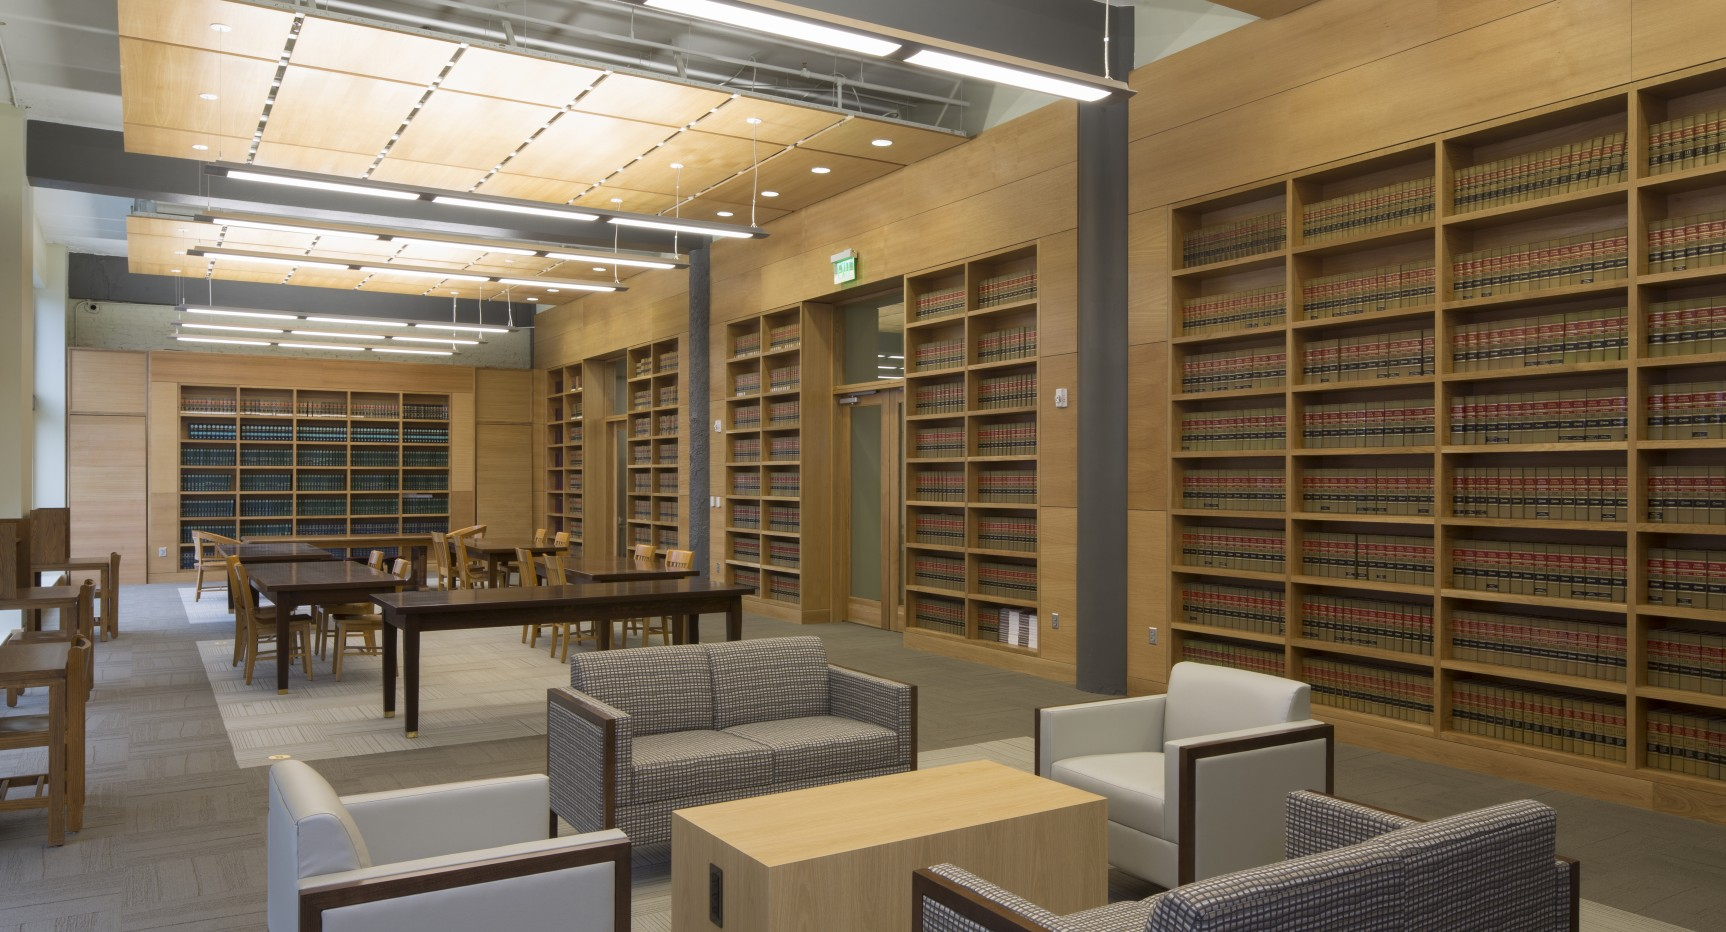 BSOL_LawLibrary